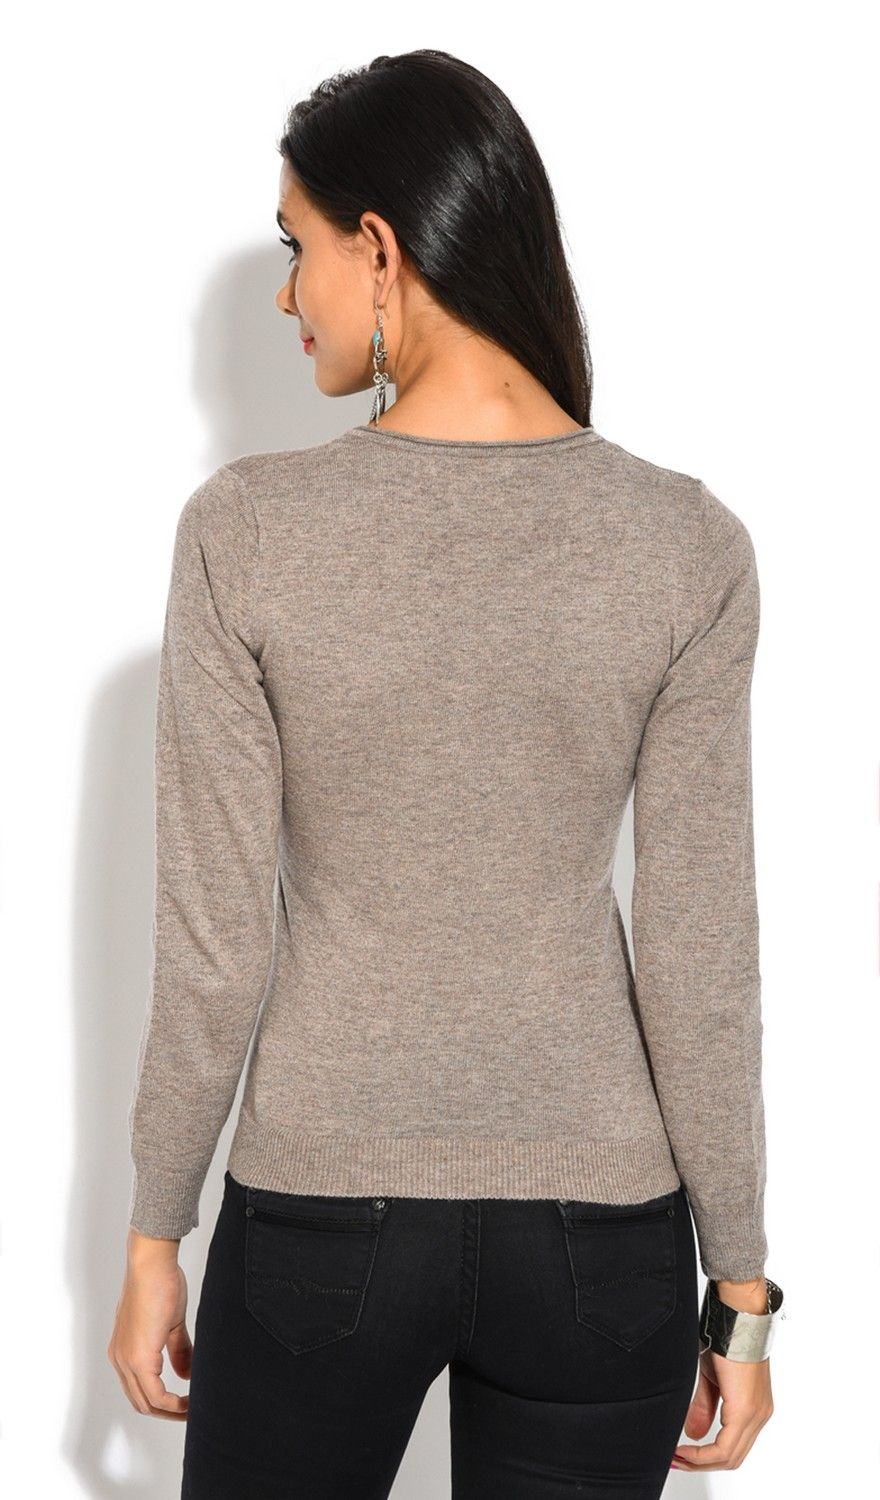 Assuili Tunisian Neck Sweater with Rolled Buttons in Beige